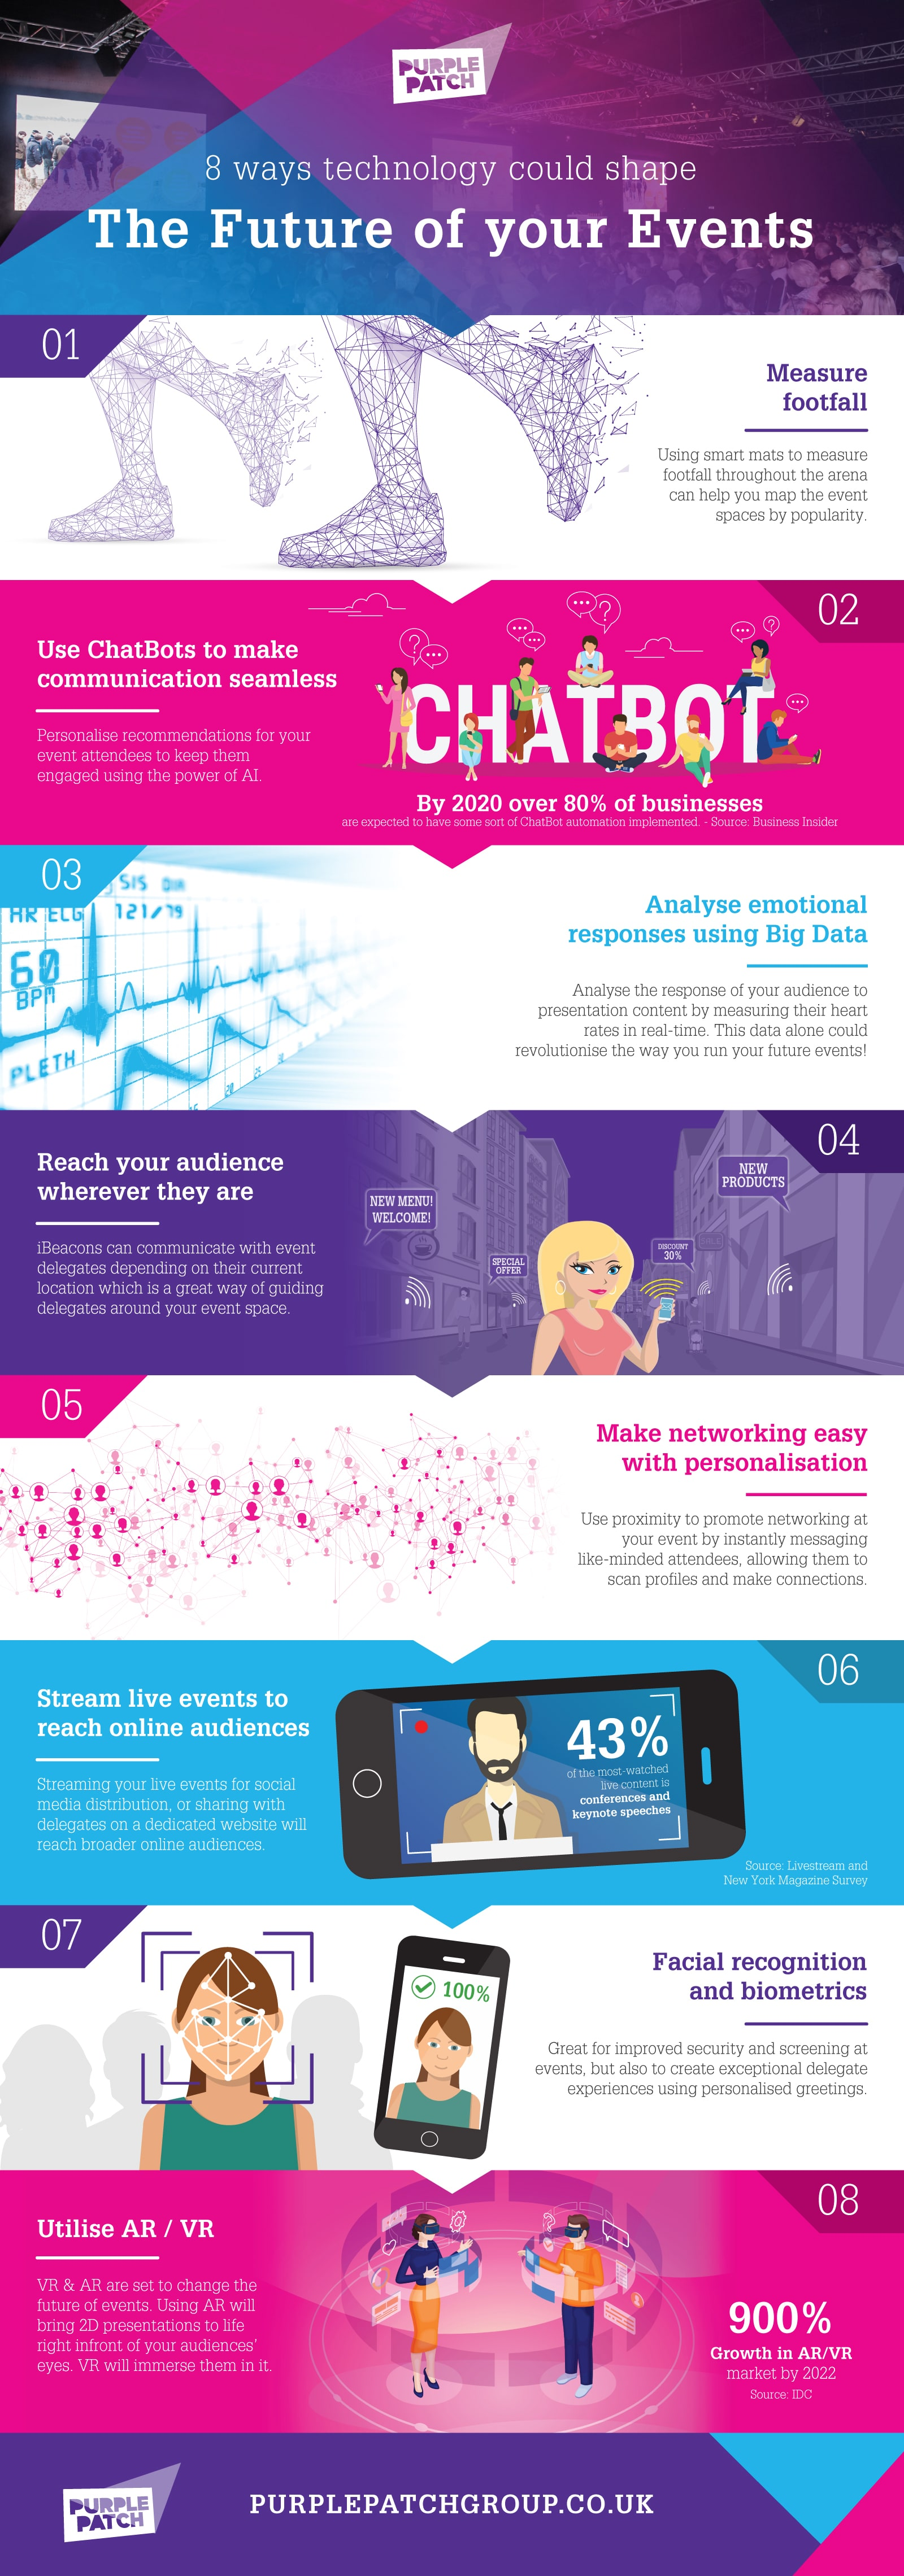 Event-technology-of-the-future-infographic-plaza